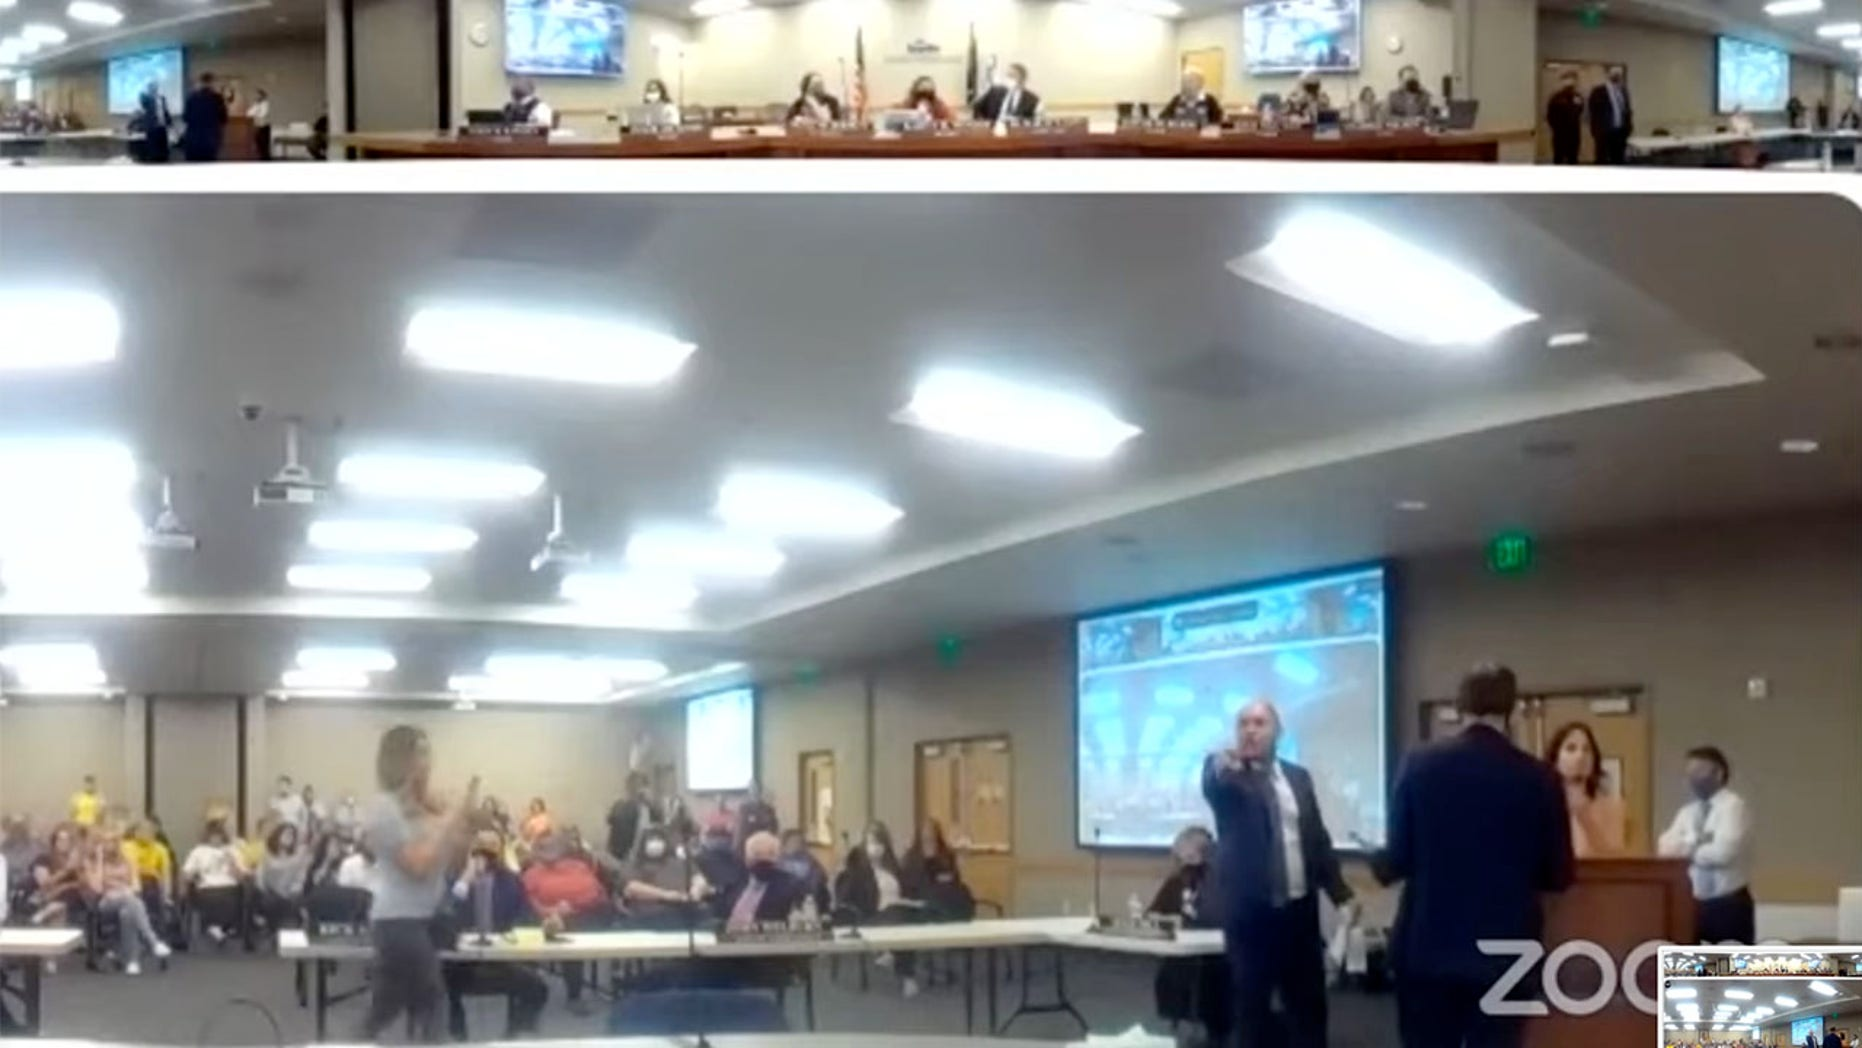 Anti-Mask Protesters in Utah Who Derailed a School Board Meeting May Face Charges